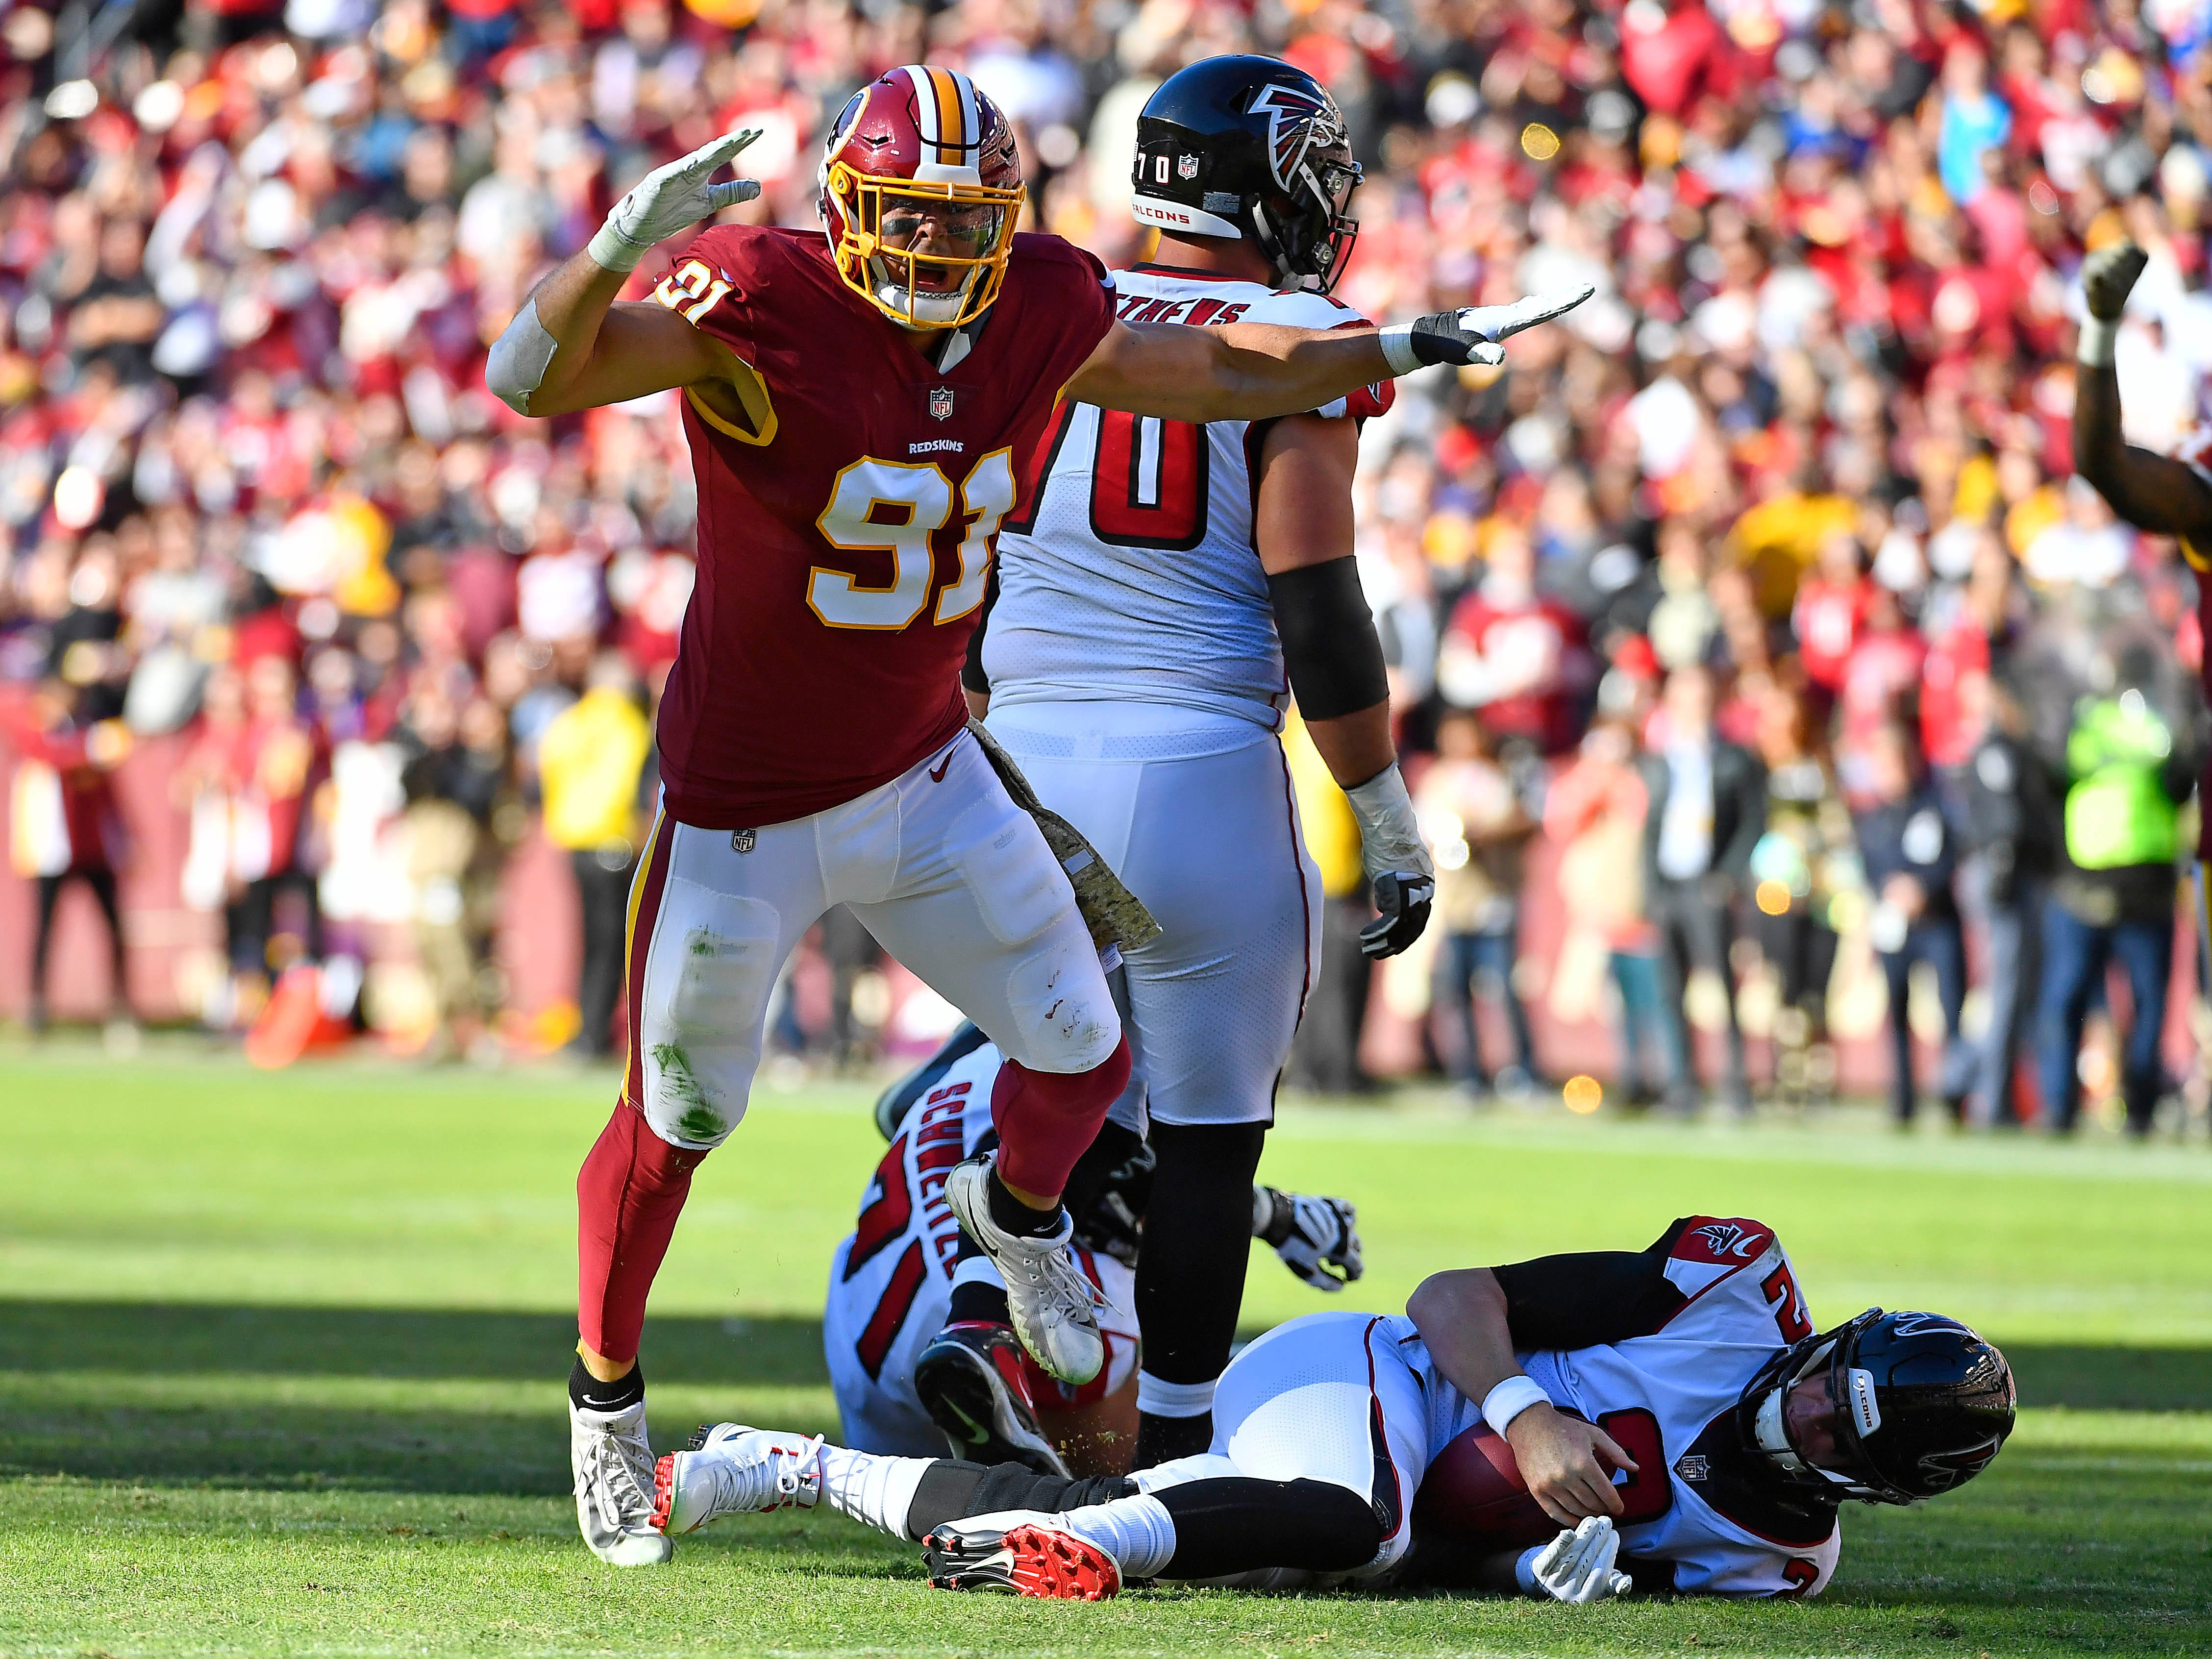 Washington Redskins outside linebacker Ryan Kerrigan (91) celebrates after sacking Atlanta Falcons quarterback Matt Ryan (2) during the first half at FedExField.